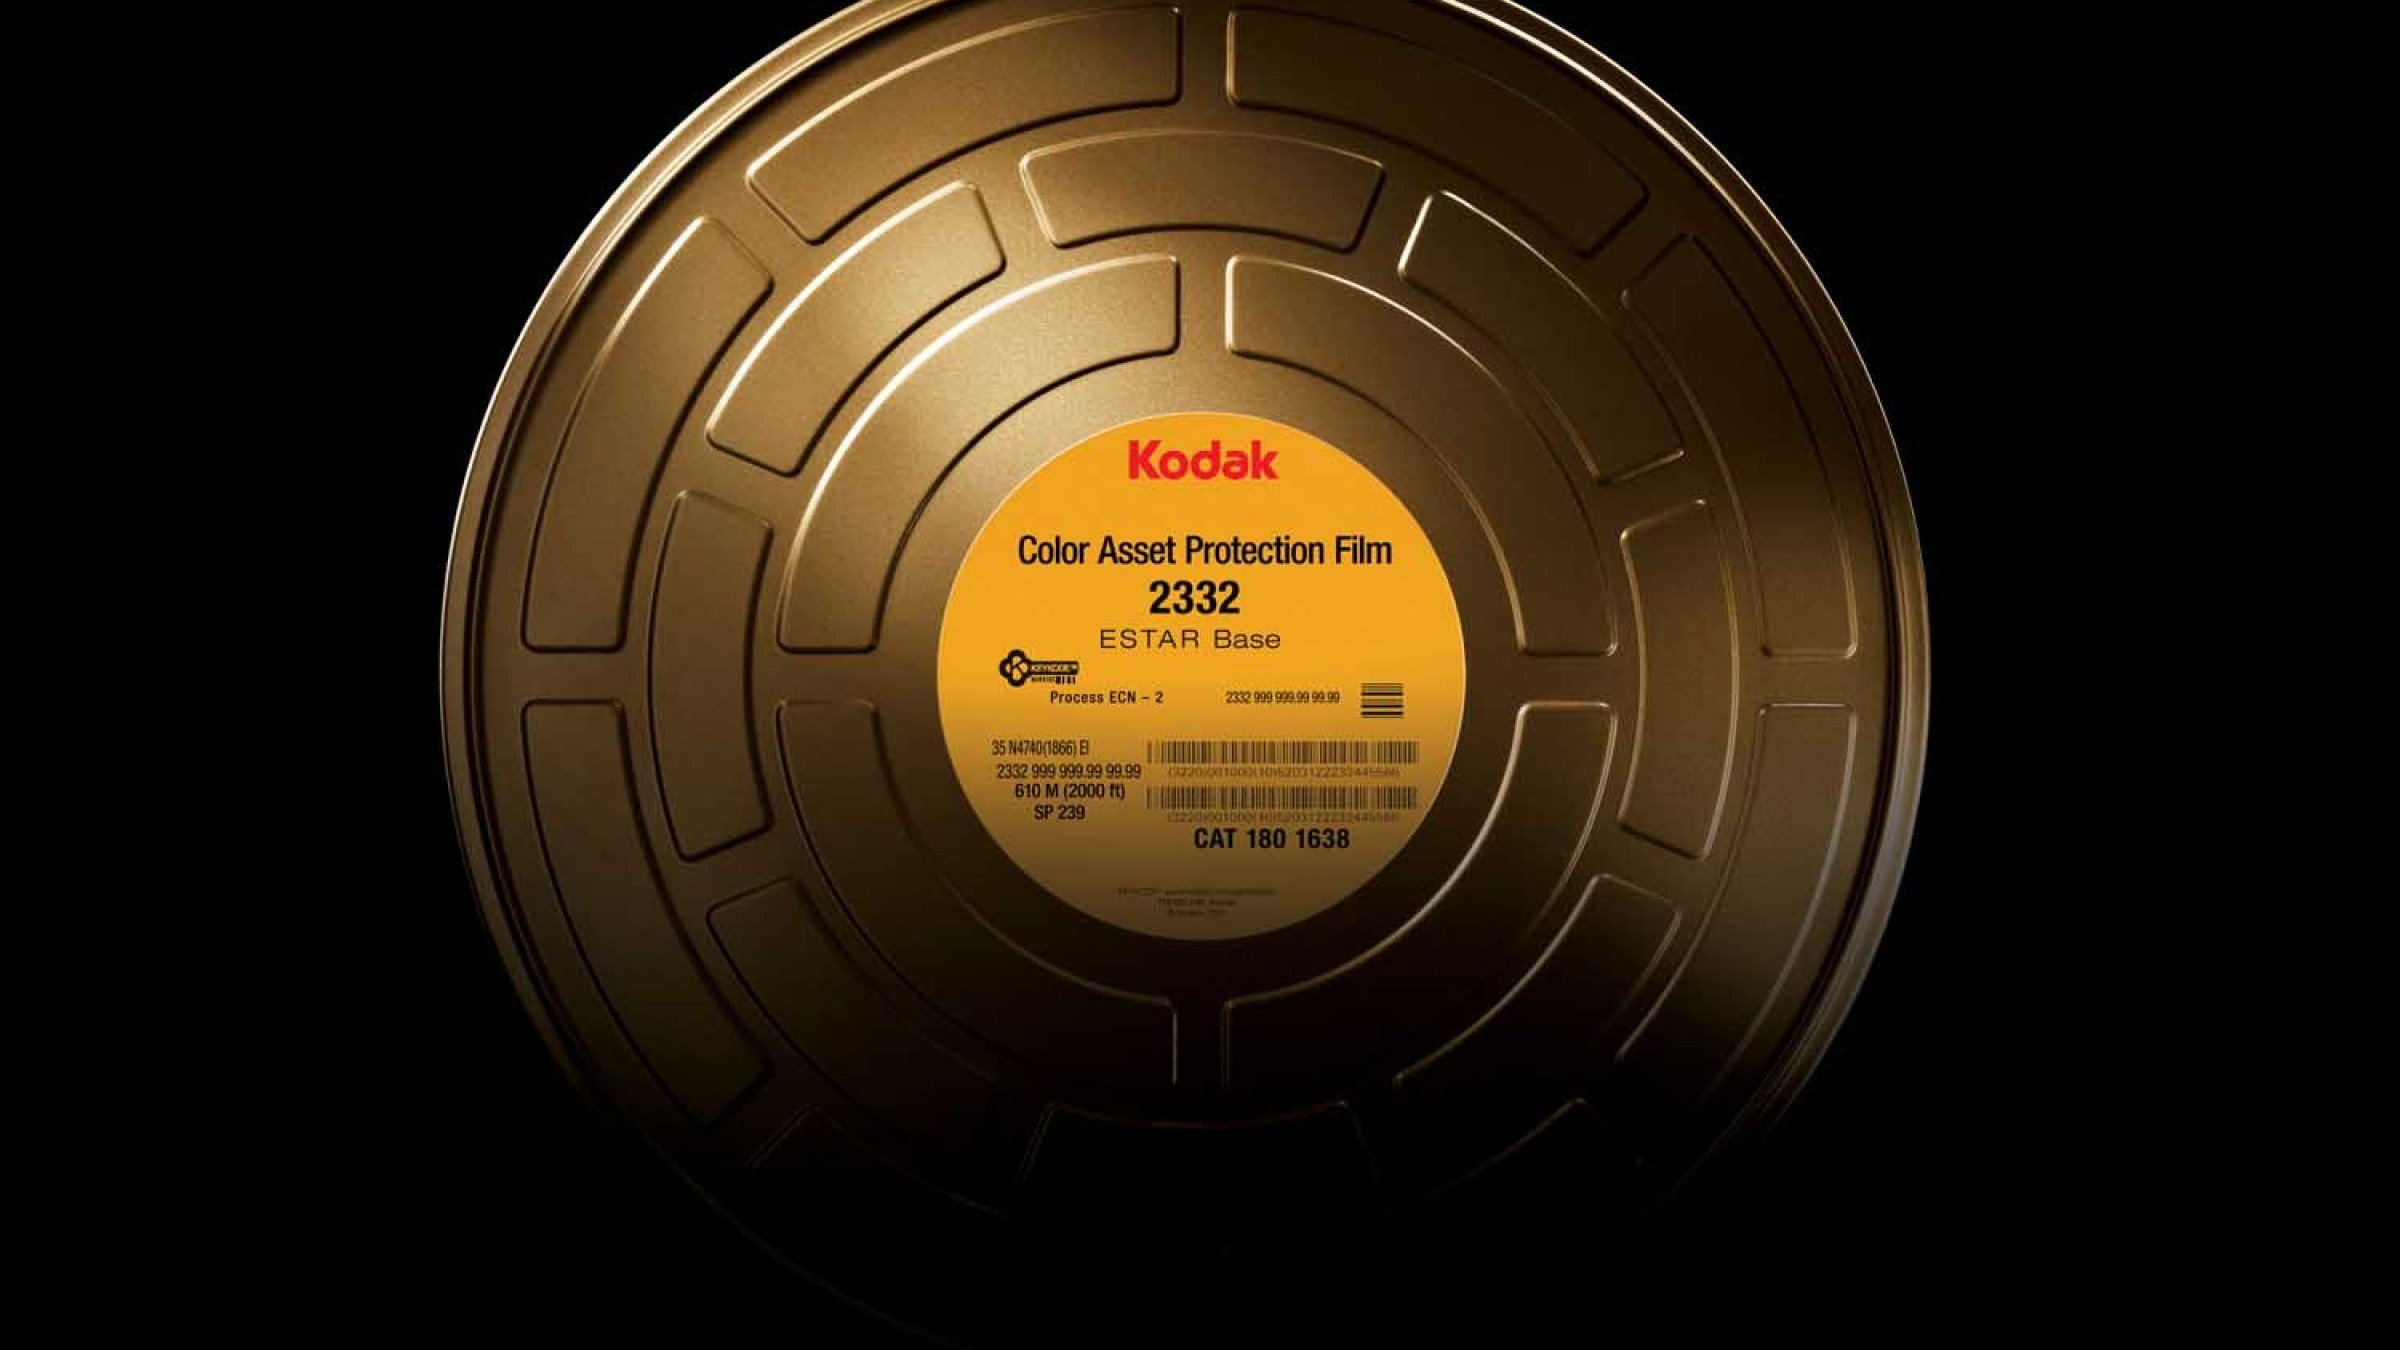 The Deal That Saved Film: Kodak Reaches an Agreement with